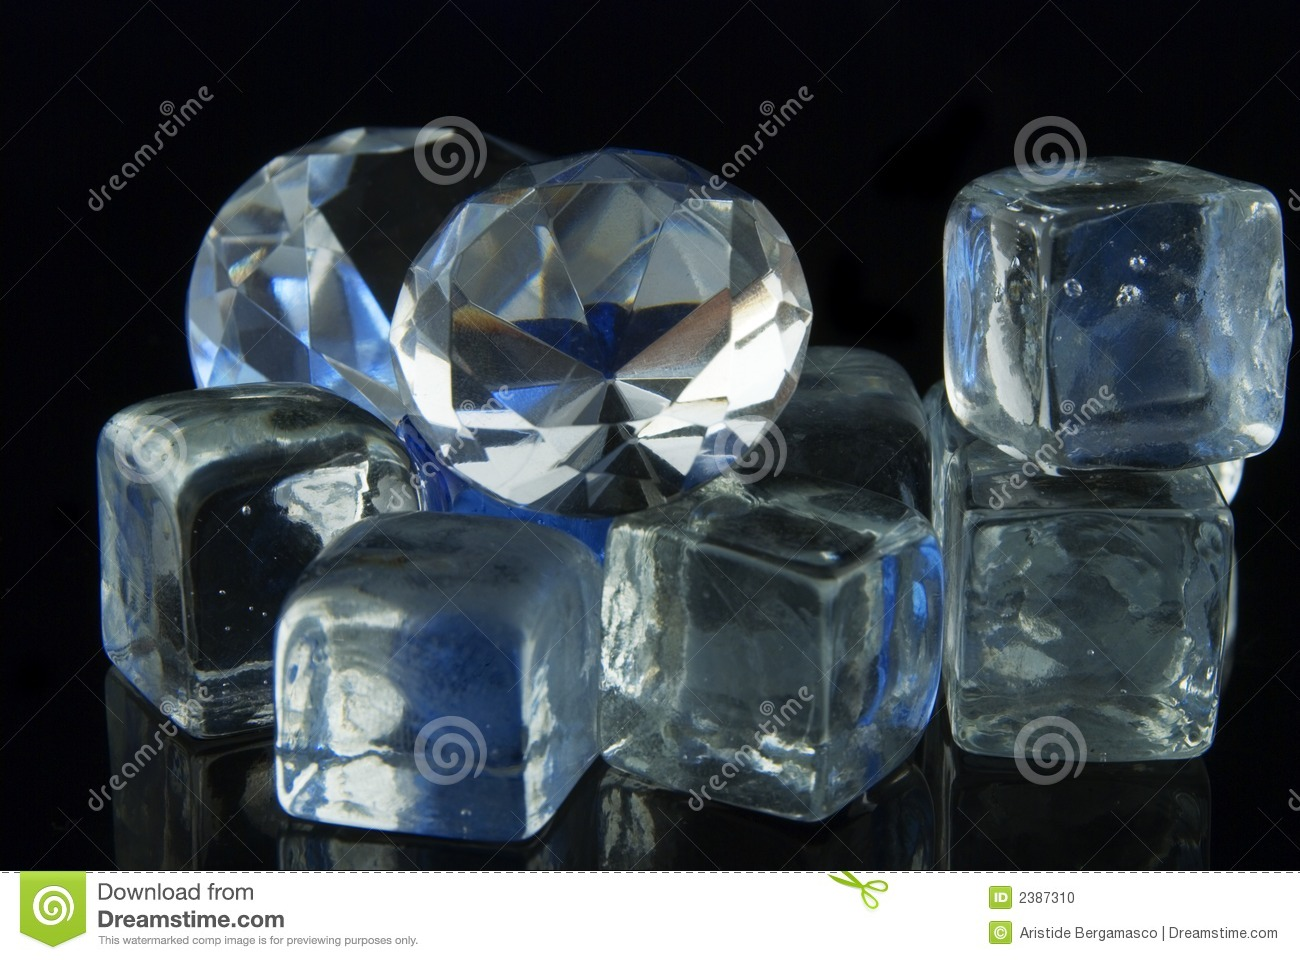 Diamonds and ice